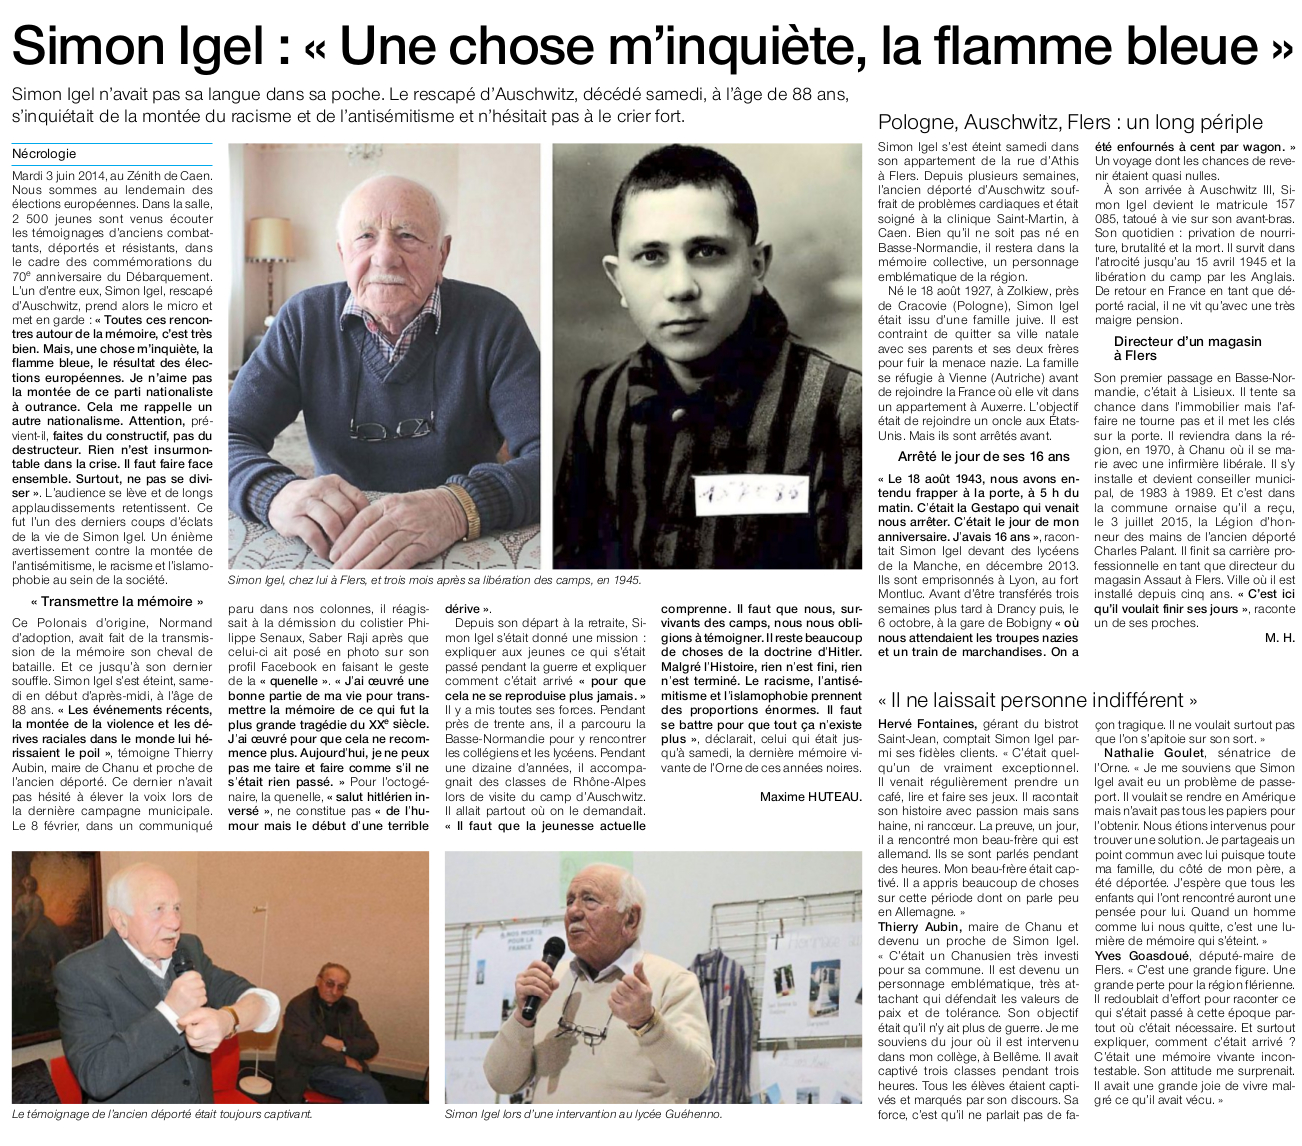 Disparition de Simon Igel